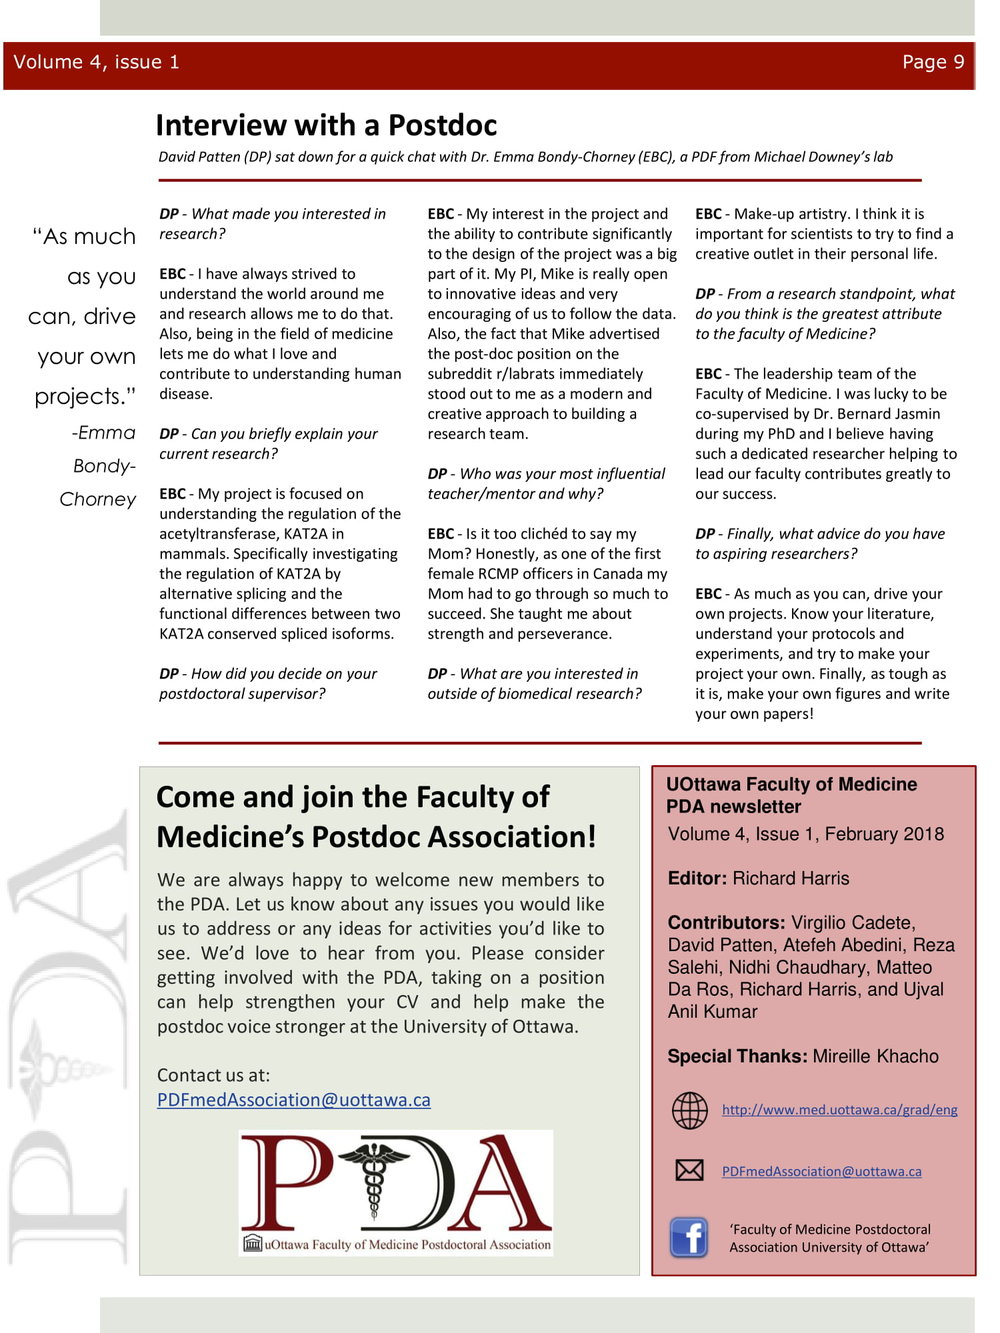 PDA_Newsletter_Volume_4_Issue_1-9.jpg